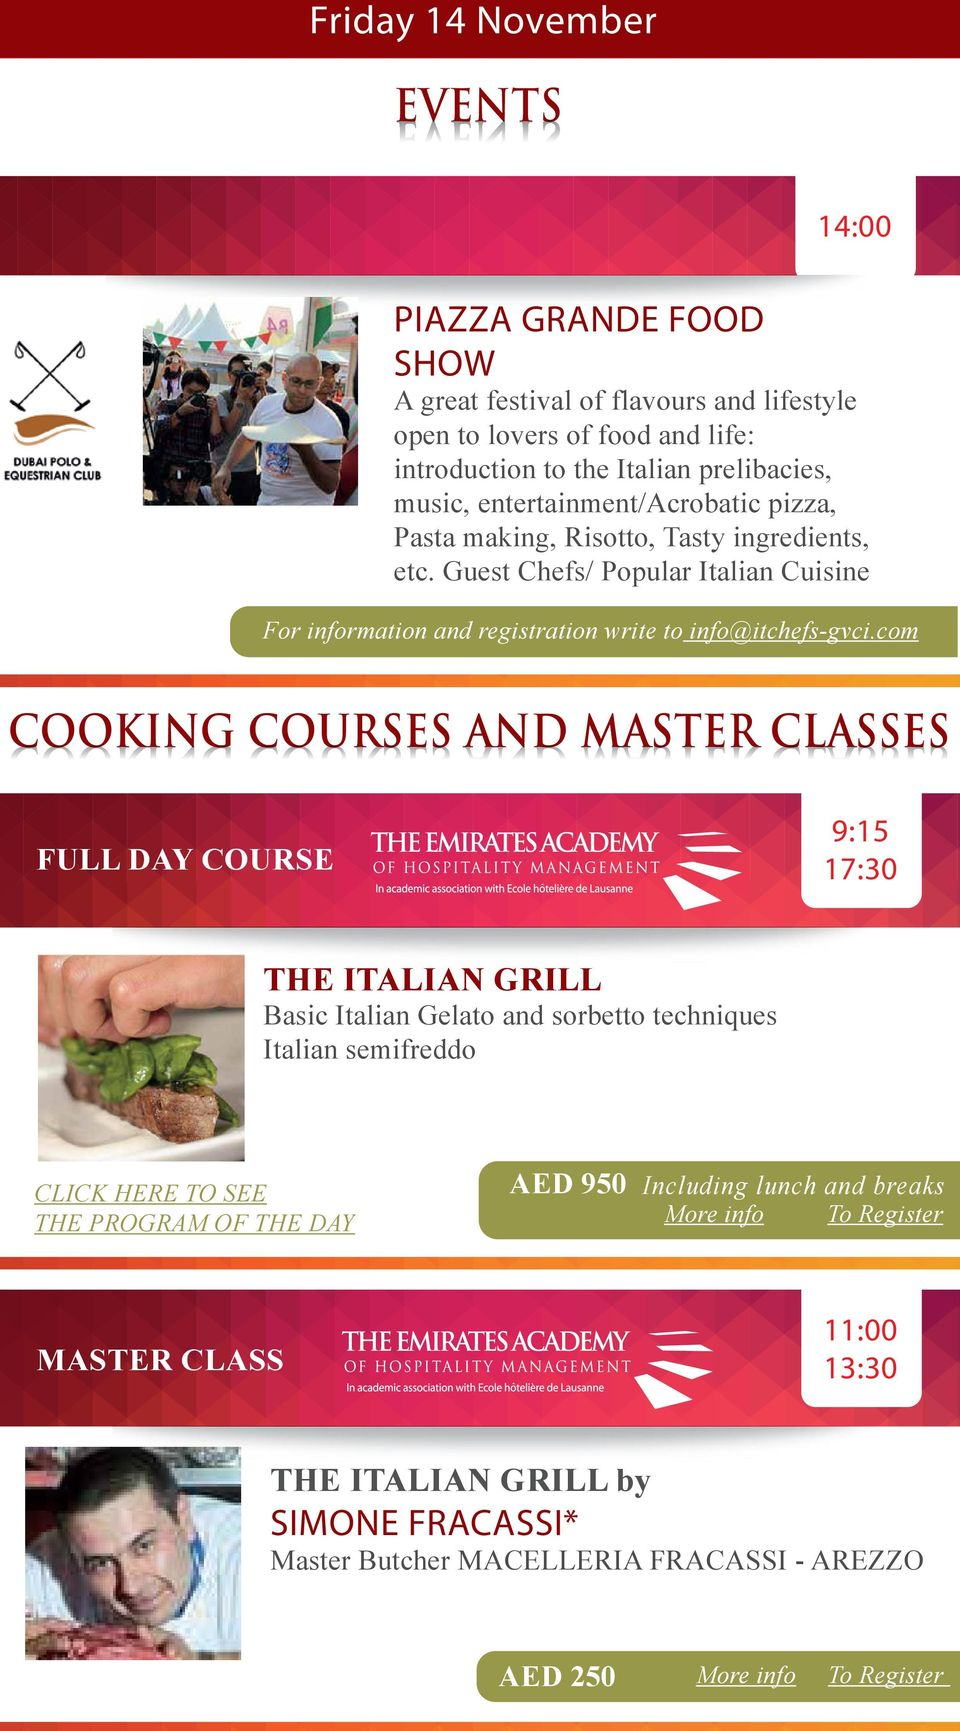 Guest Chefs/ Popular Italian Cuisine For information and registration write to info@itchefs-gvci.